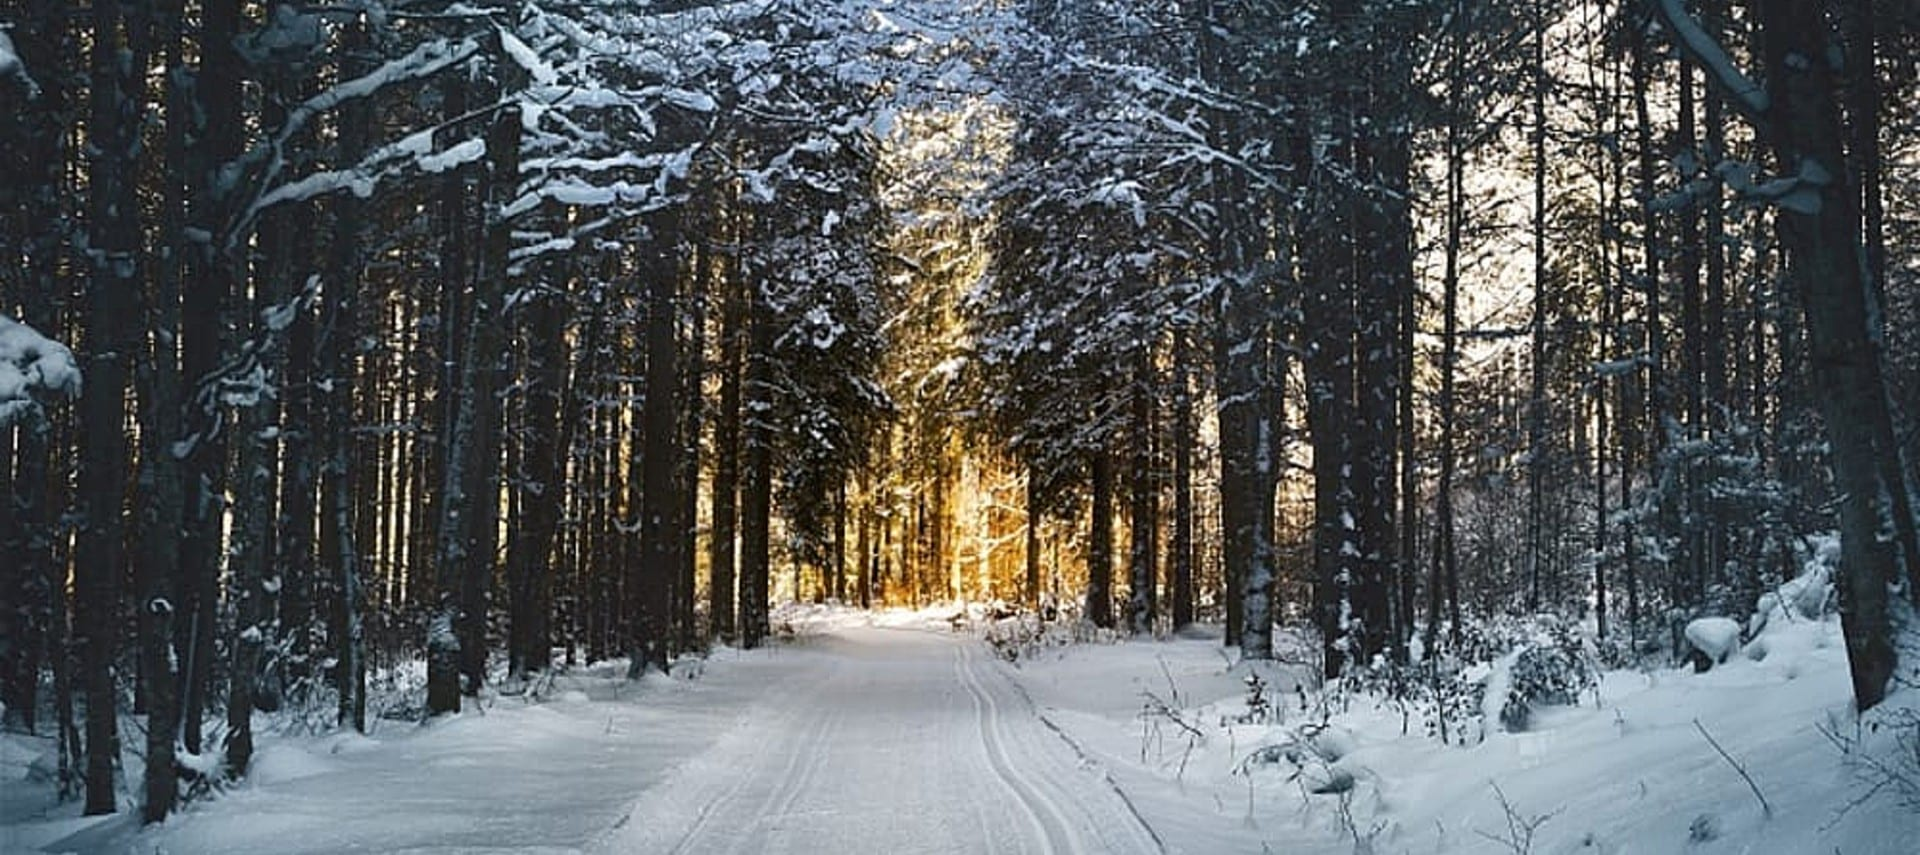 An empty road covered in show showing tire tracks surrounded by tall snow covered trees in a forest.